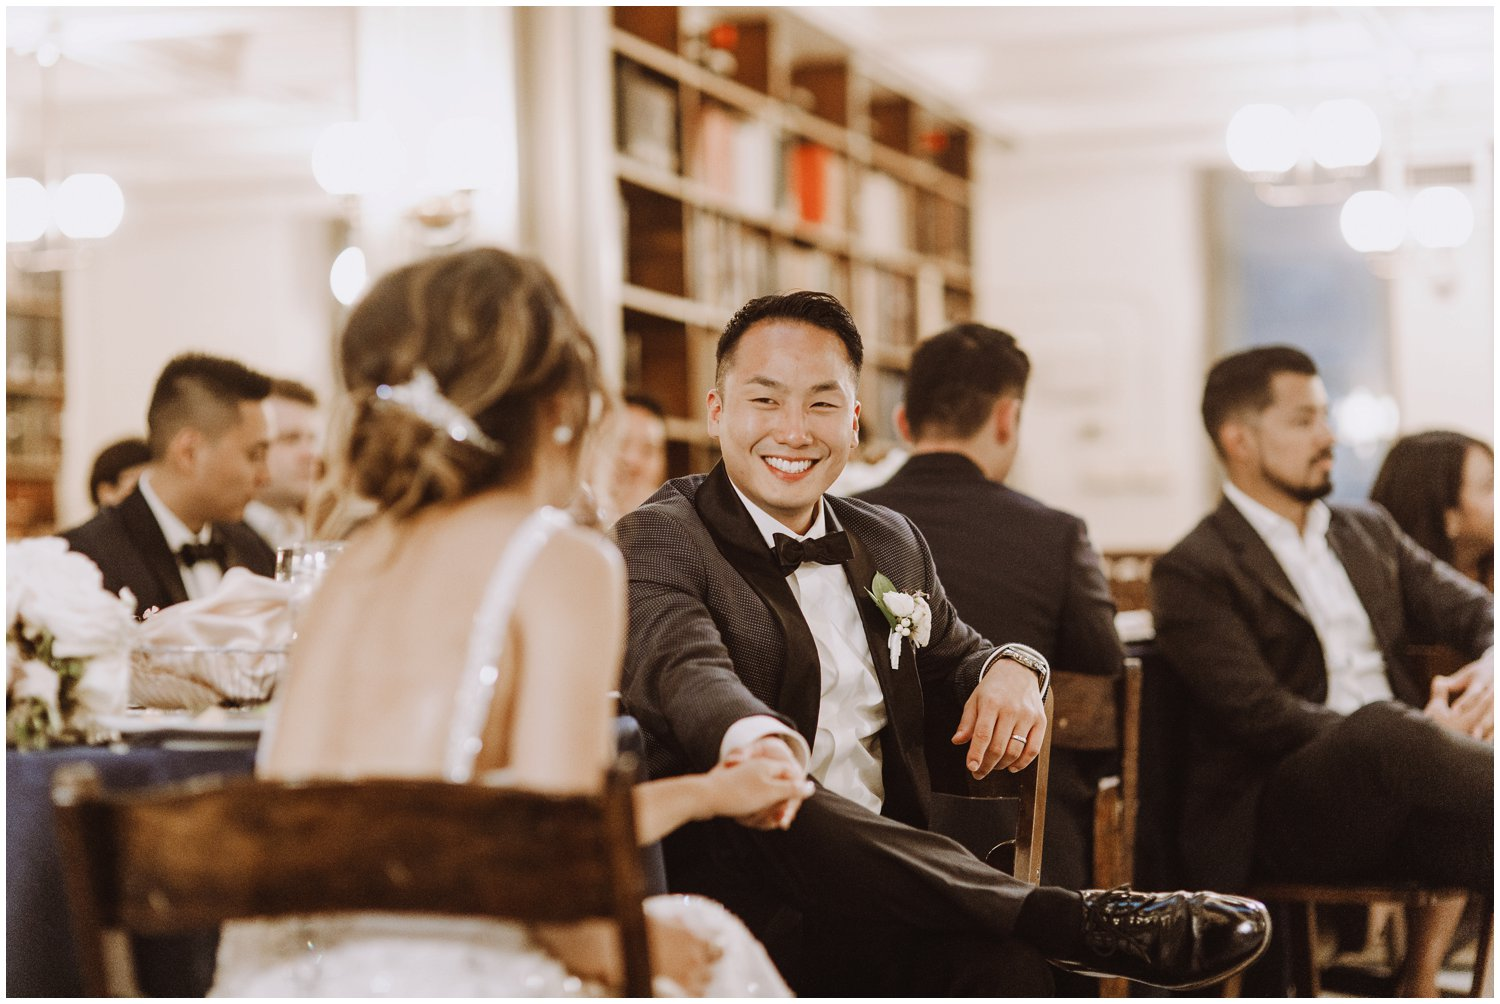 Peabody Library Wedding reception | Baltimore Wedding Photographer | Art Deco Wedding Photography | Baltimore City Wedding | Kate Ann Photography